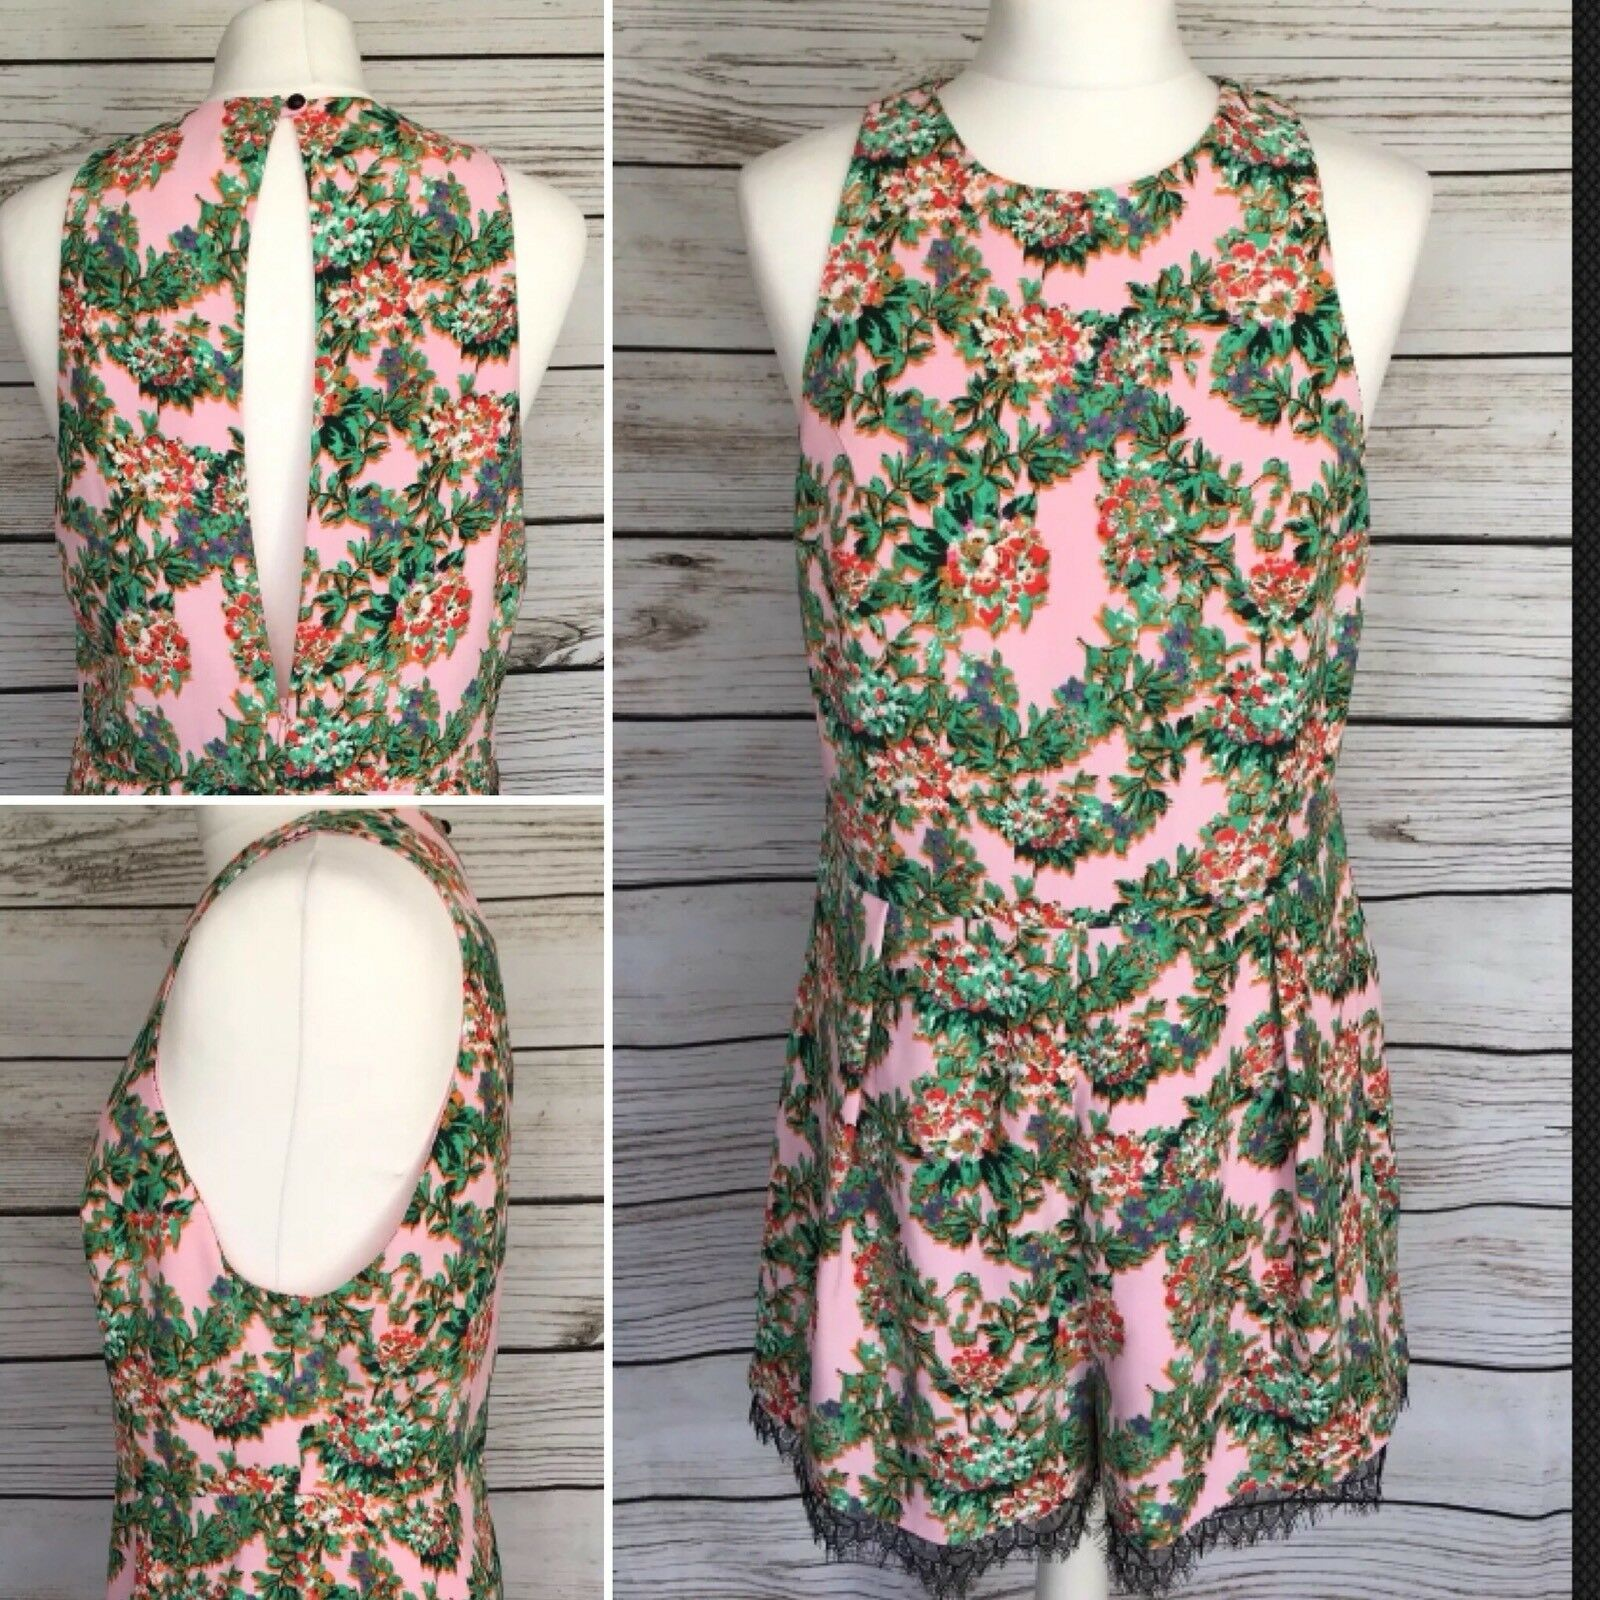 Topshop Pink Multi Floral Print Romper Playsuit Size 14 UK Brand New With Tags